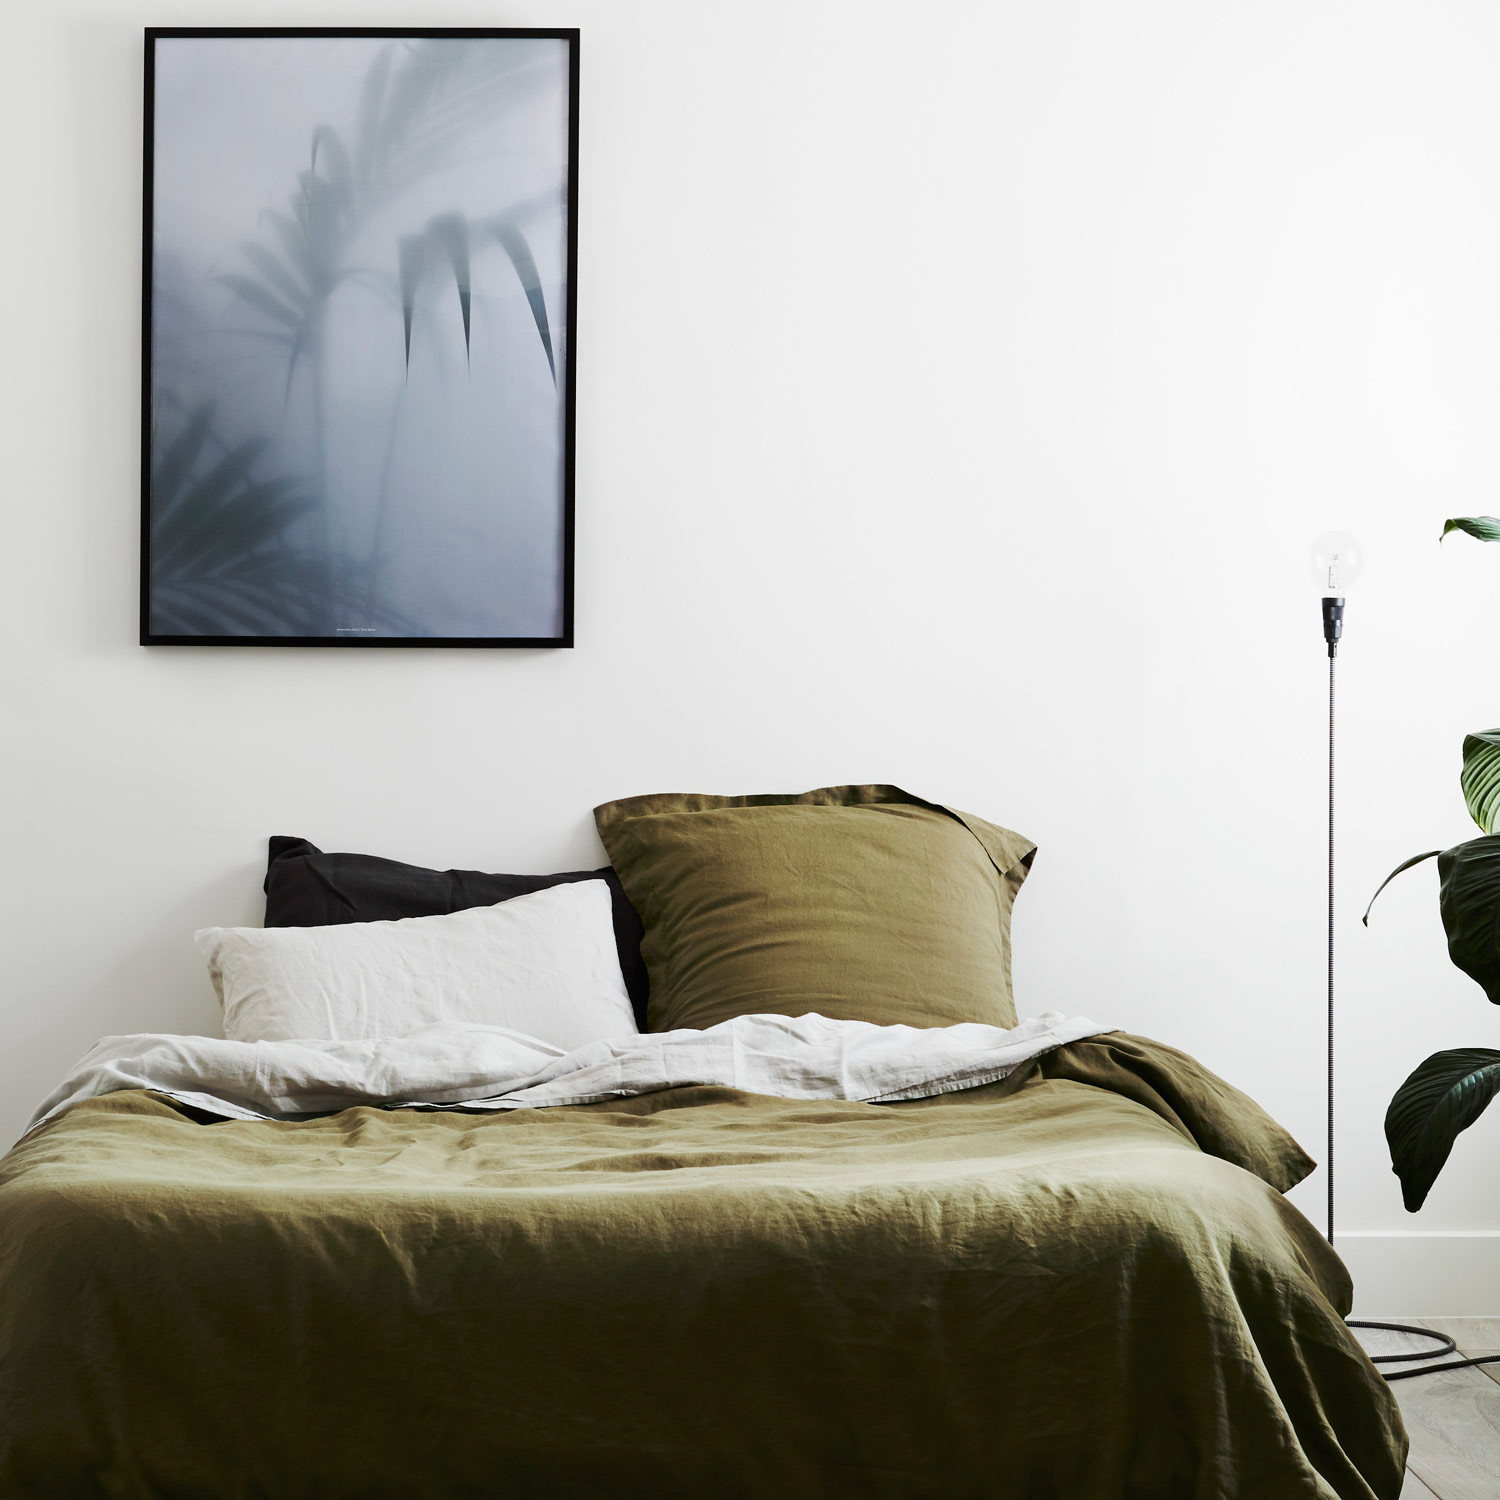 2 worlds_ugliest_color_opaque_couche_pantone_448C_interior_design_wall_painting_home_decorationg_ideas_forelements_blog